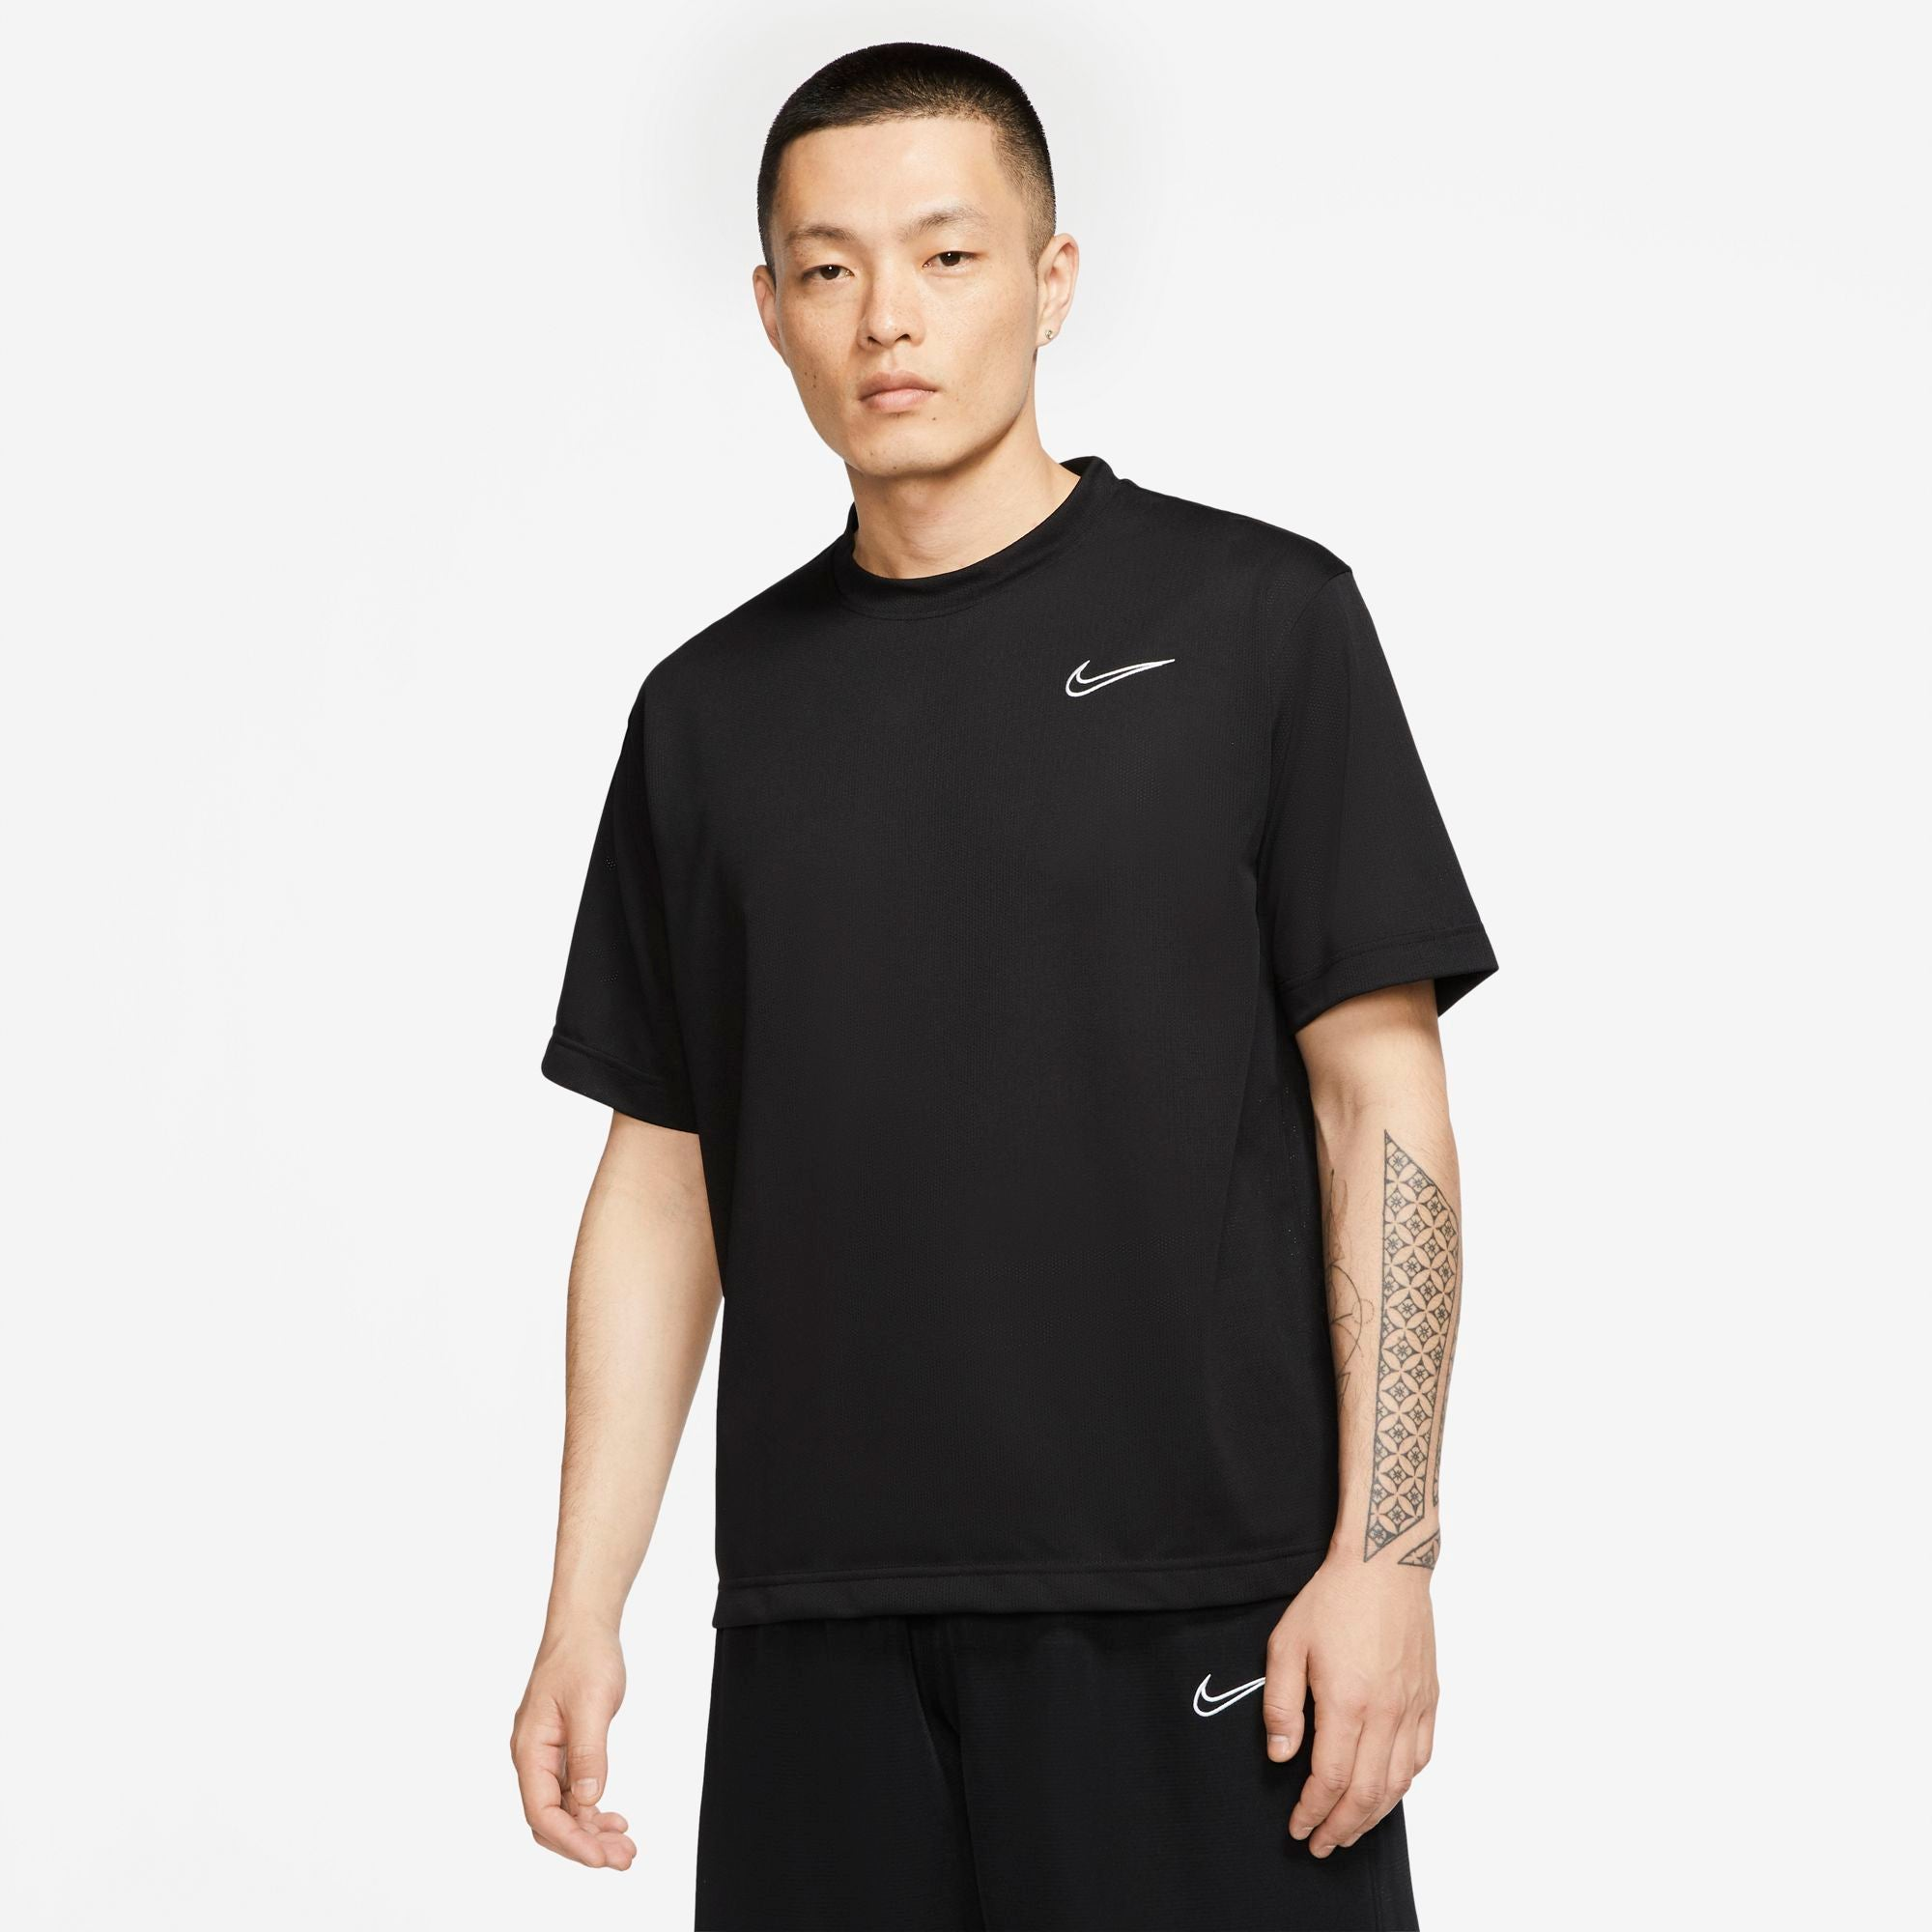 Nike Basketball Dri-Fit Classic Short Sleeved Top - Black/White